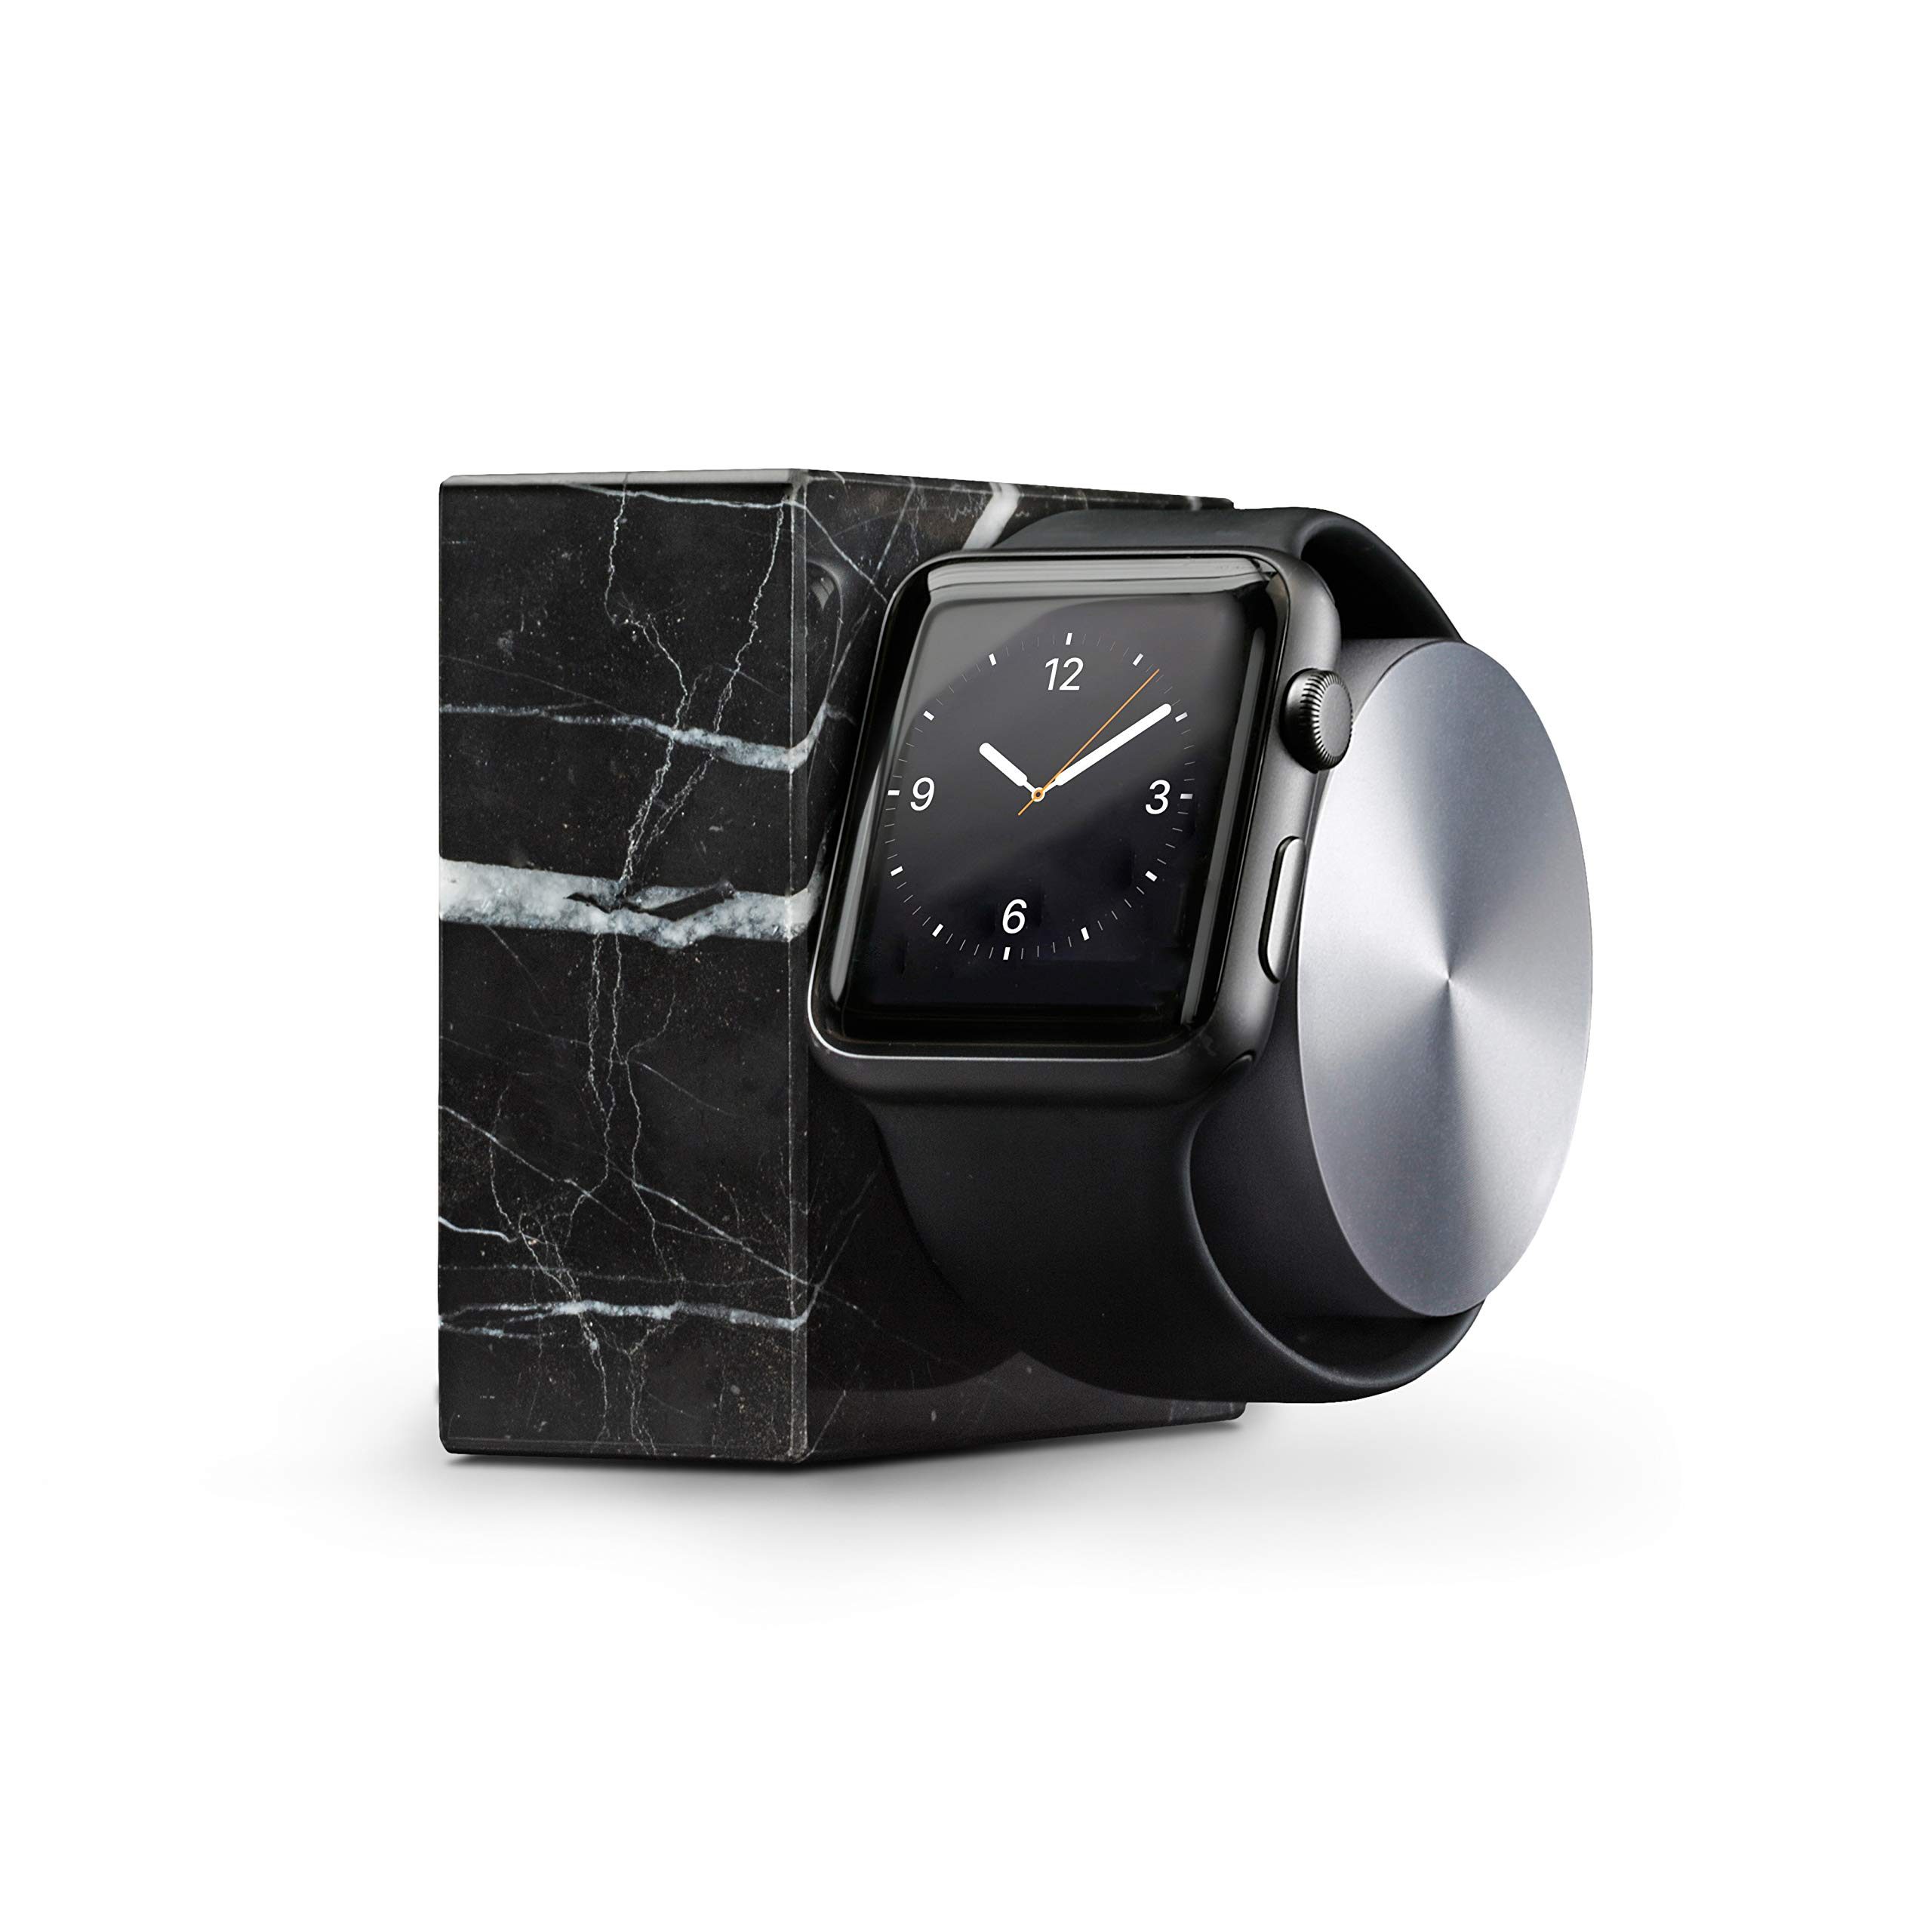 Native Union Dock (Luxury Tech) - Marble Weighted Charging Dock for Apple Watch (Black) by Native Union